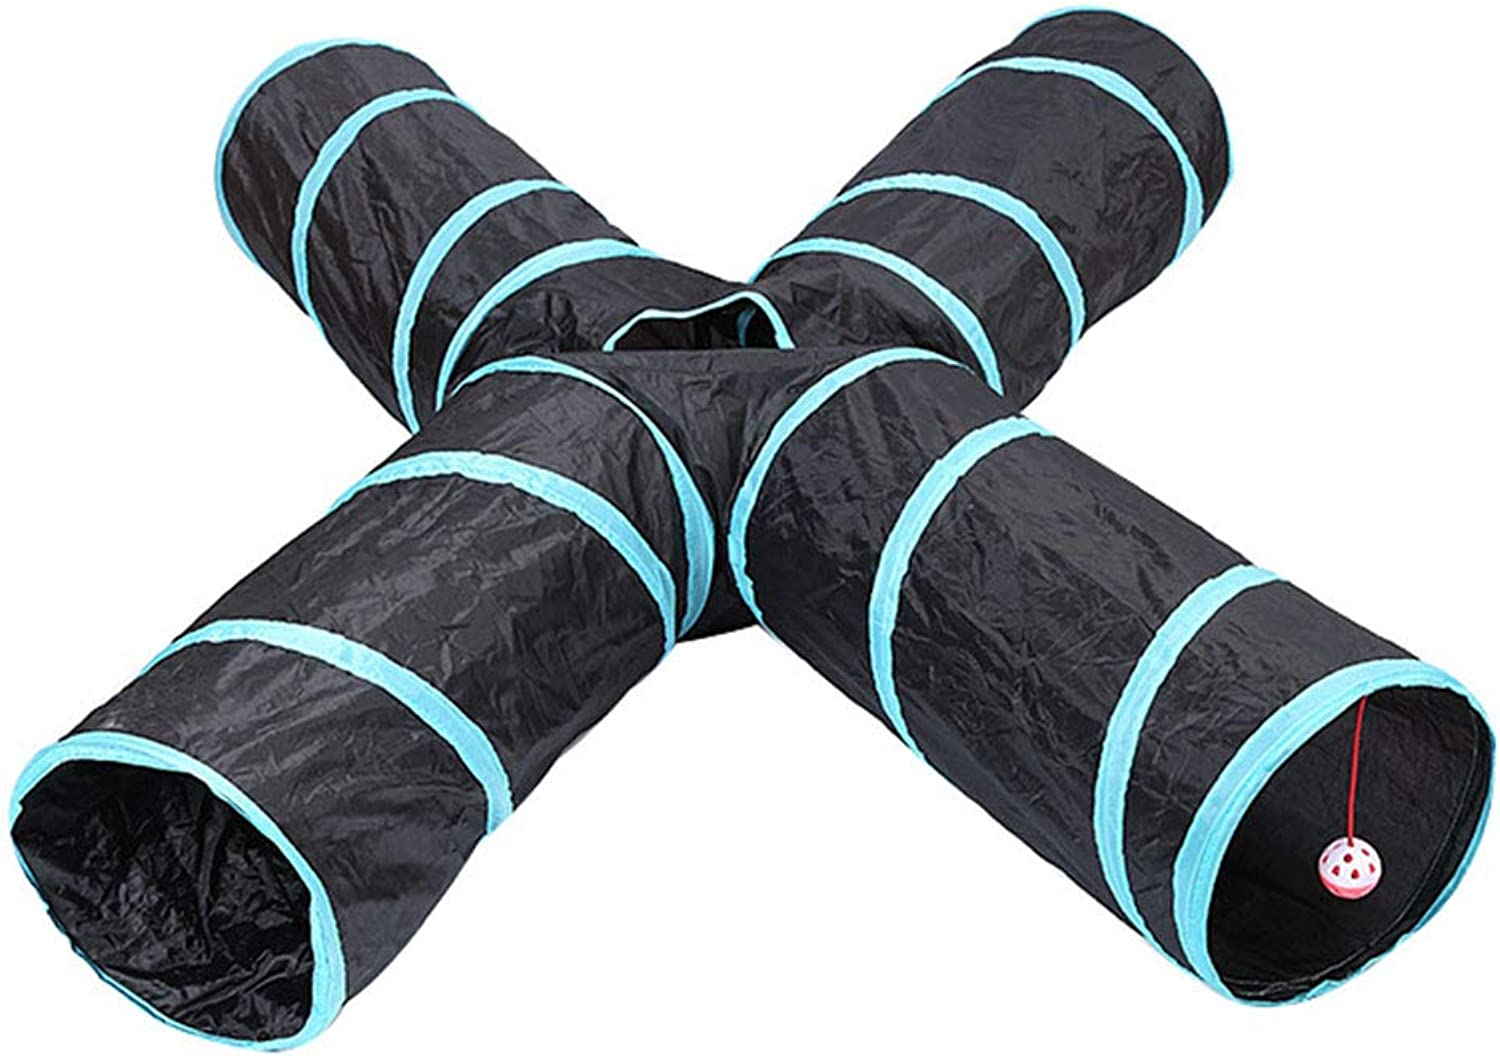 Foldable 4Way pet Game Tunnel Toy, pet Channel Toy, Suitable for Outdoor and Indoor